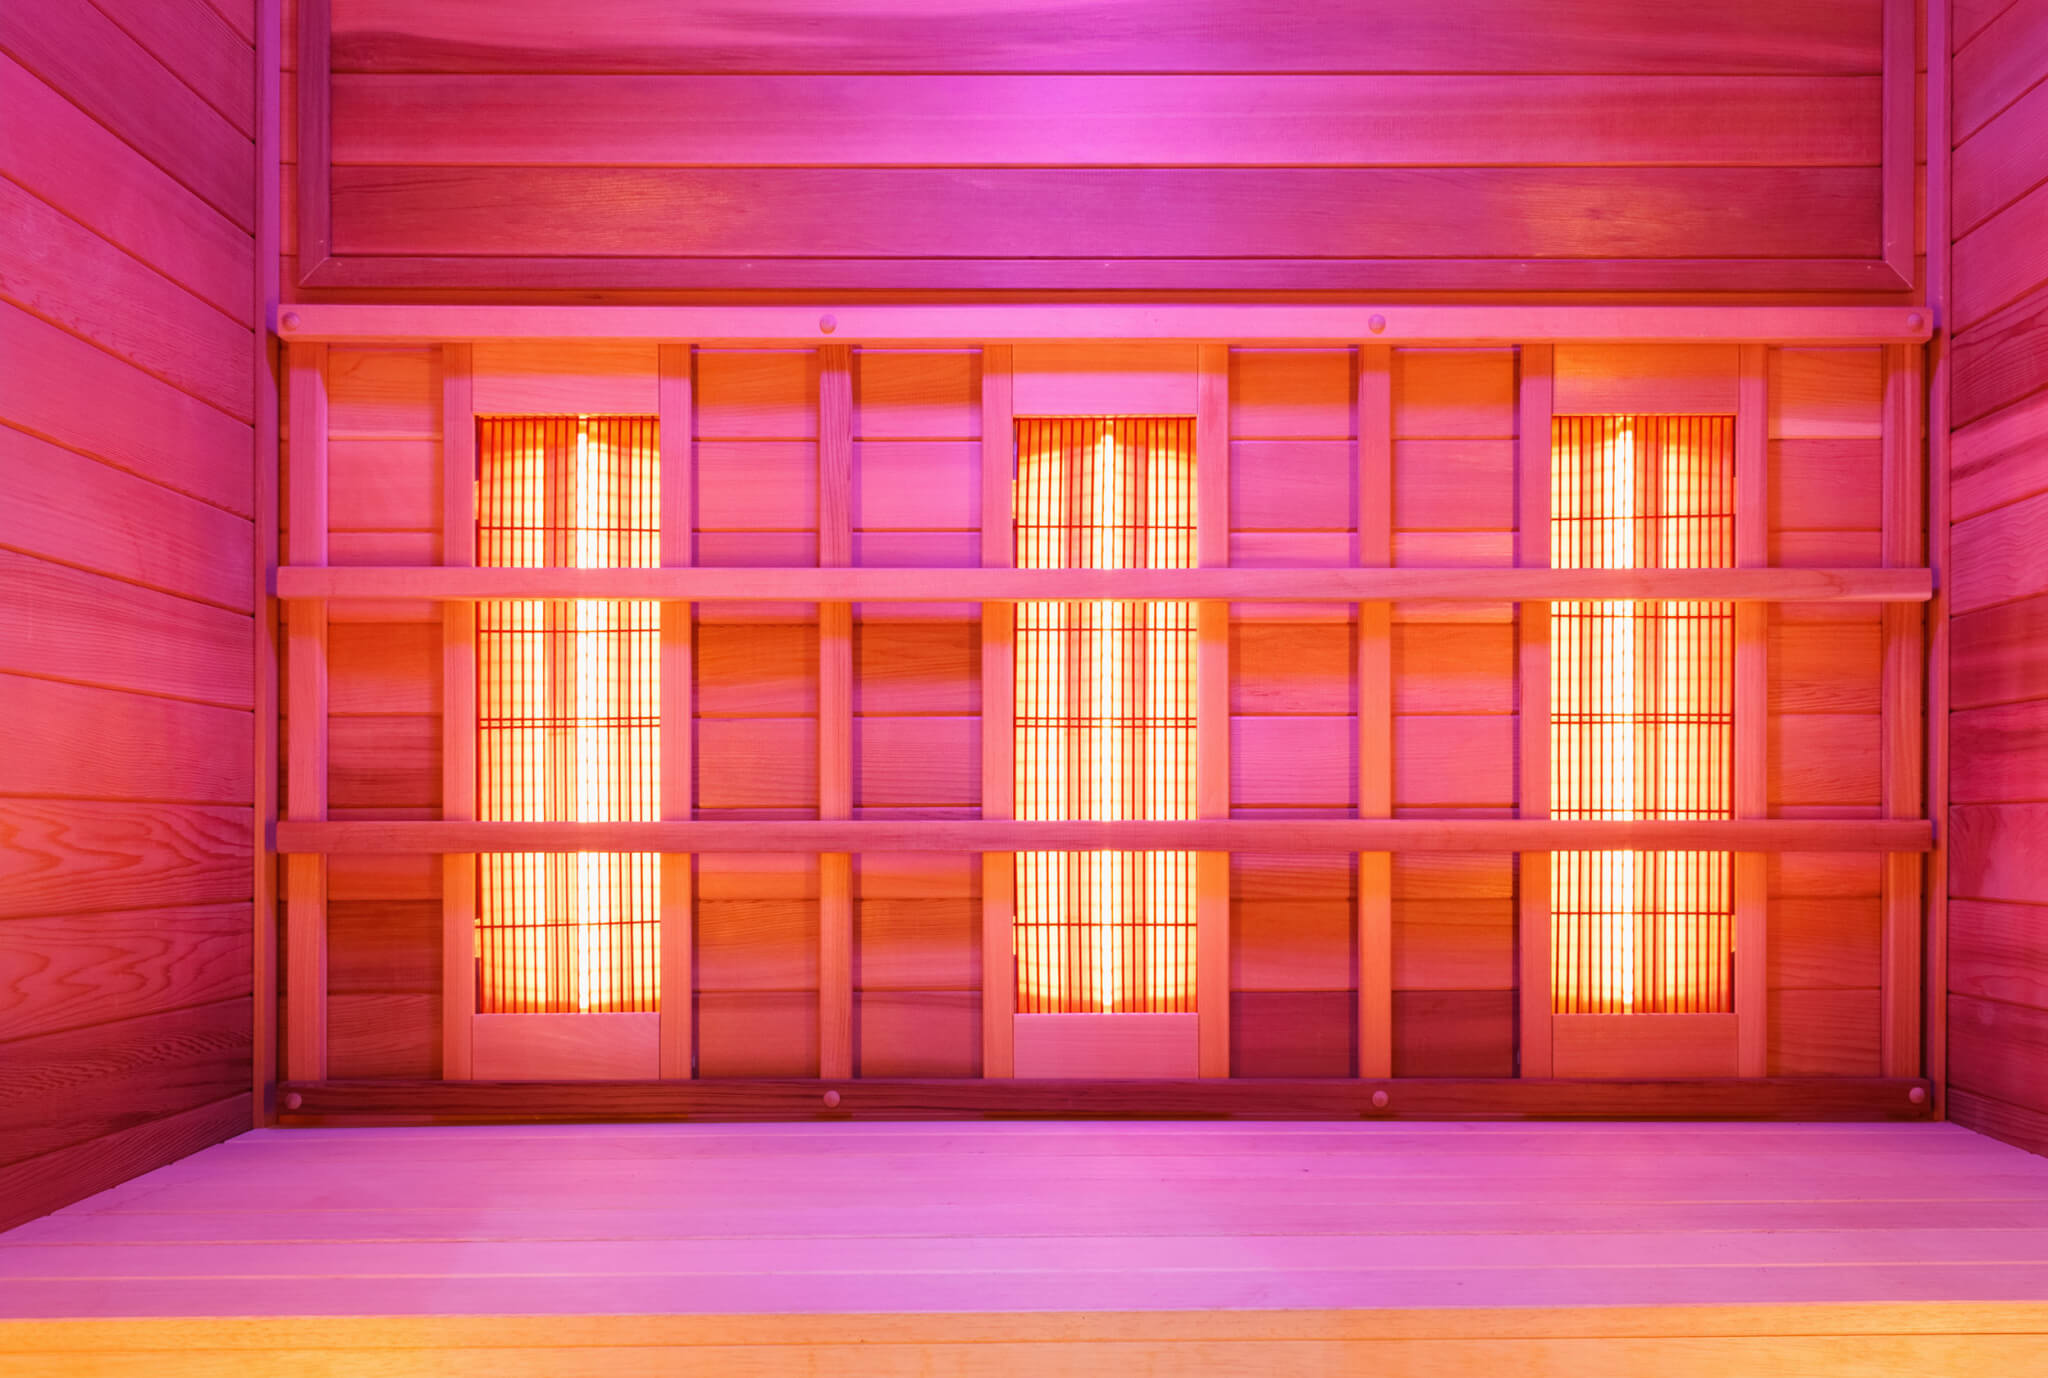 Infrared Sauna Benefits for Health and Well-Being